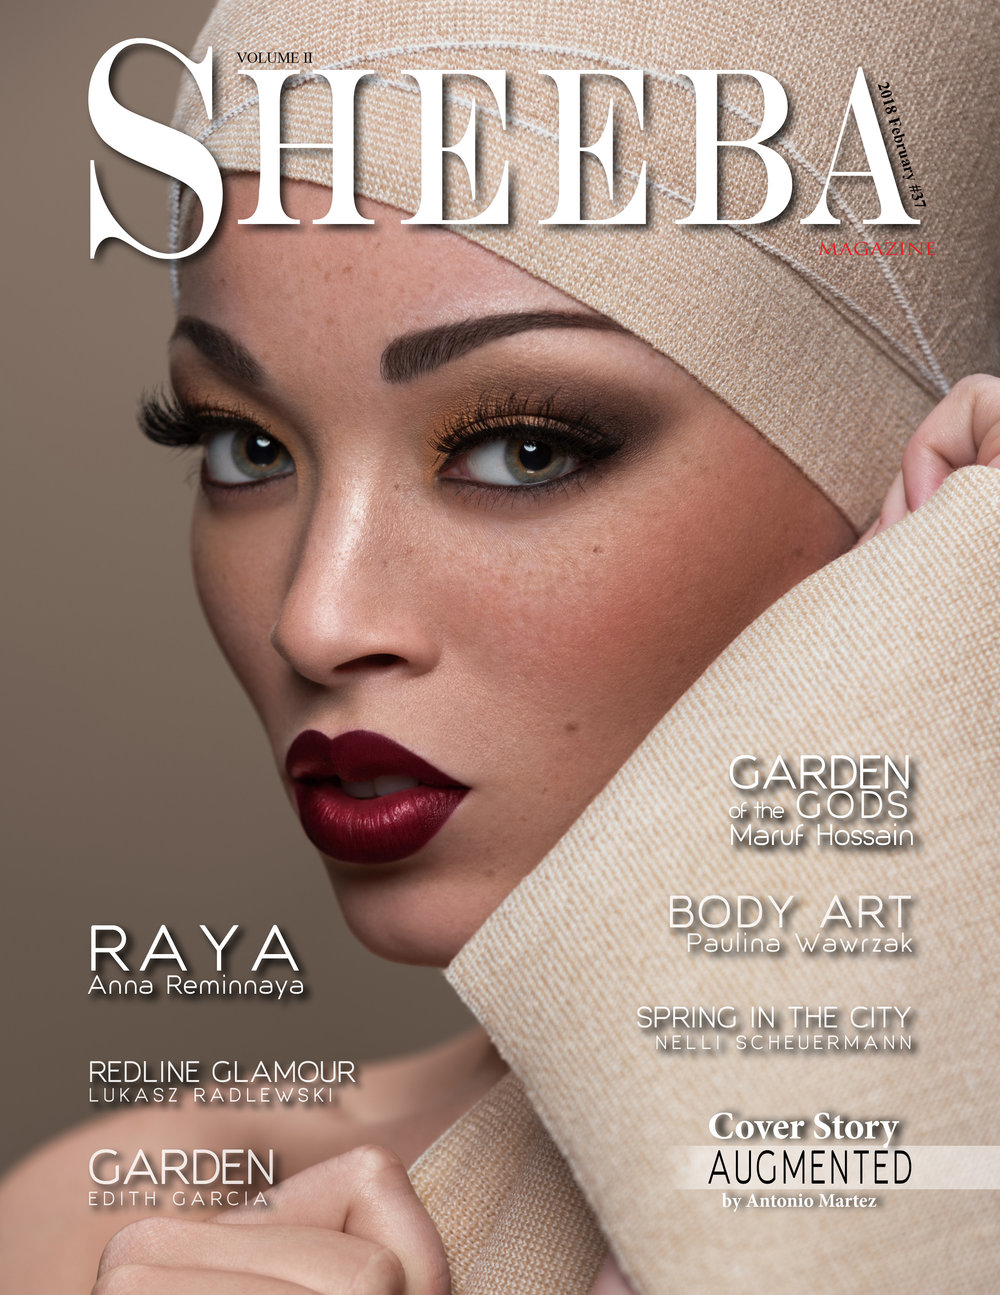 SHEEBA - FEBRUARY 2018   AUGMENTED beauty editorial by Antonio Martez, New York Fashion Photographer, was featured in the February 2018 edition of Sheeba Magazine. The editorial was a Cover & Feature Spread for that edition.